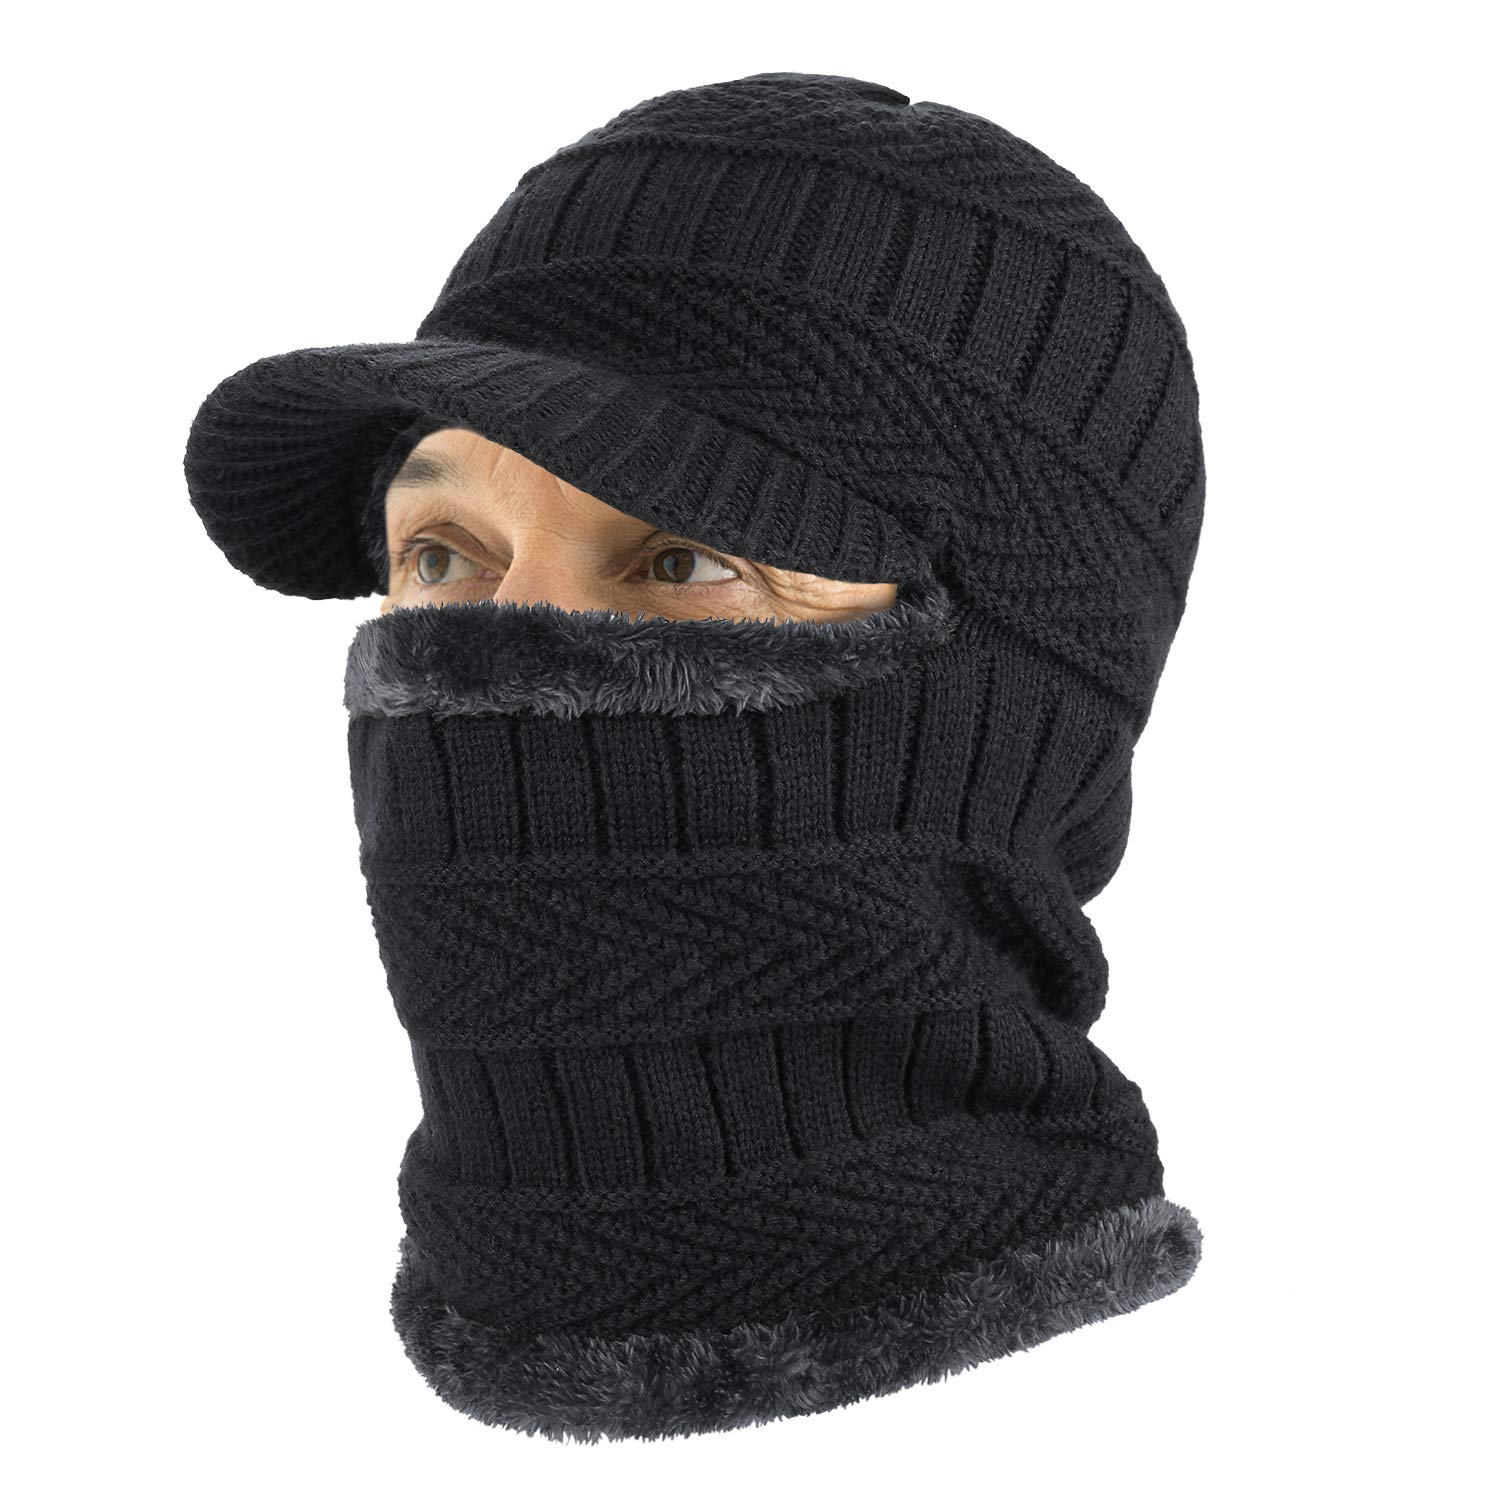 40702d510c9 Amazon.com  TAGVO Winter Knitted Balaclava Beanie Hat with Flexible Neck  Warmer